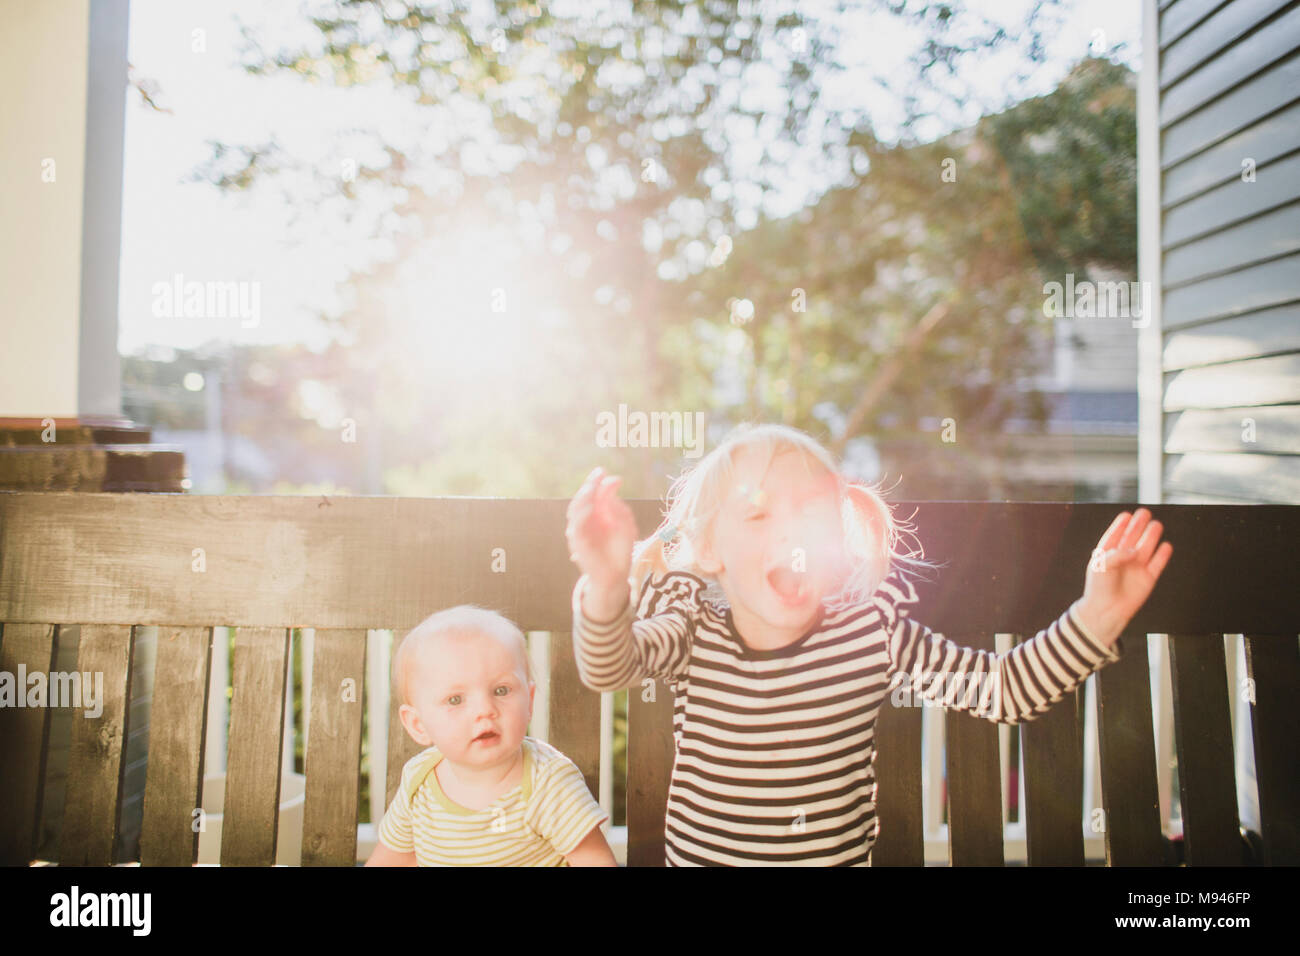 Girl and baby sitting on bench in sunshine - Stock Image